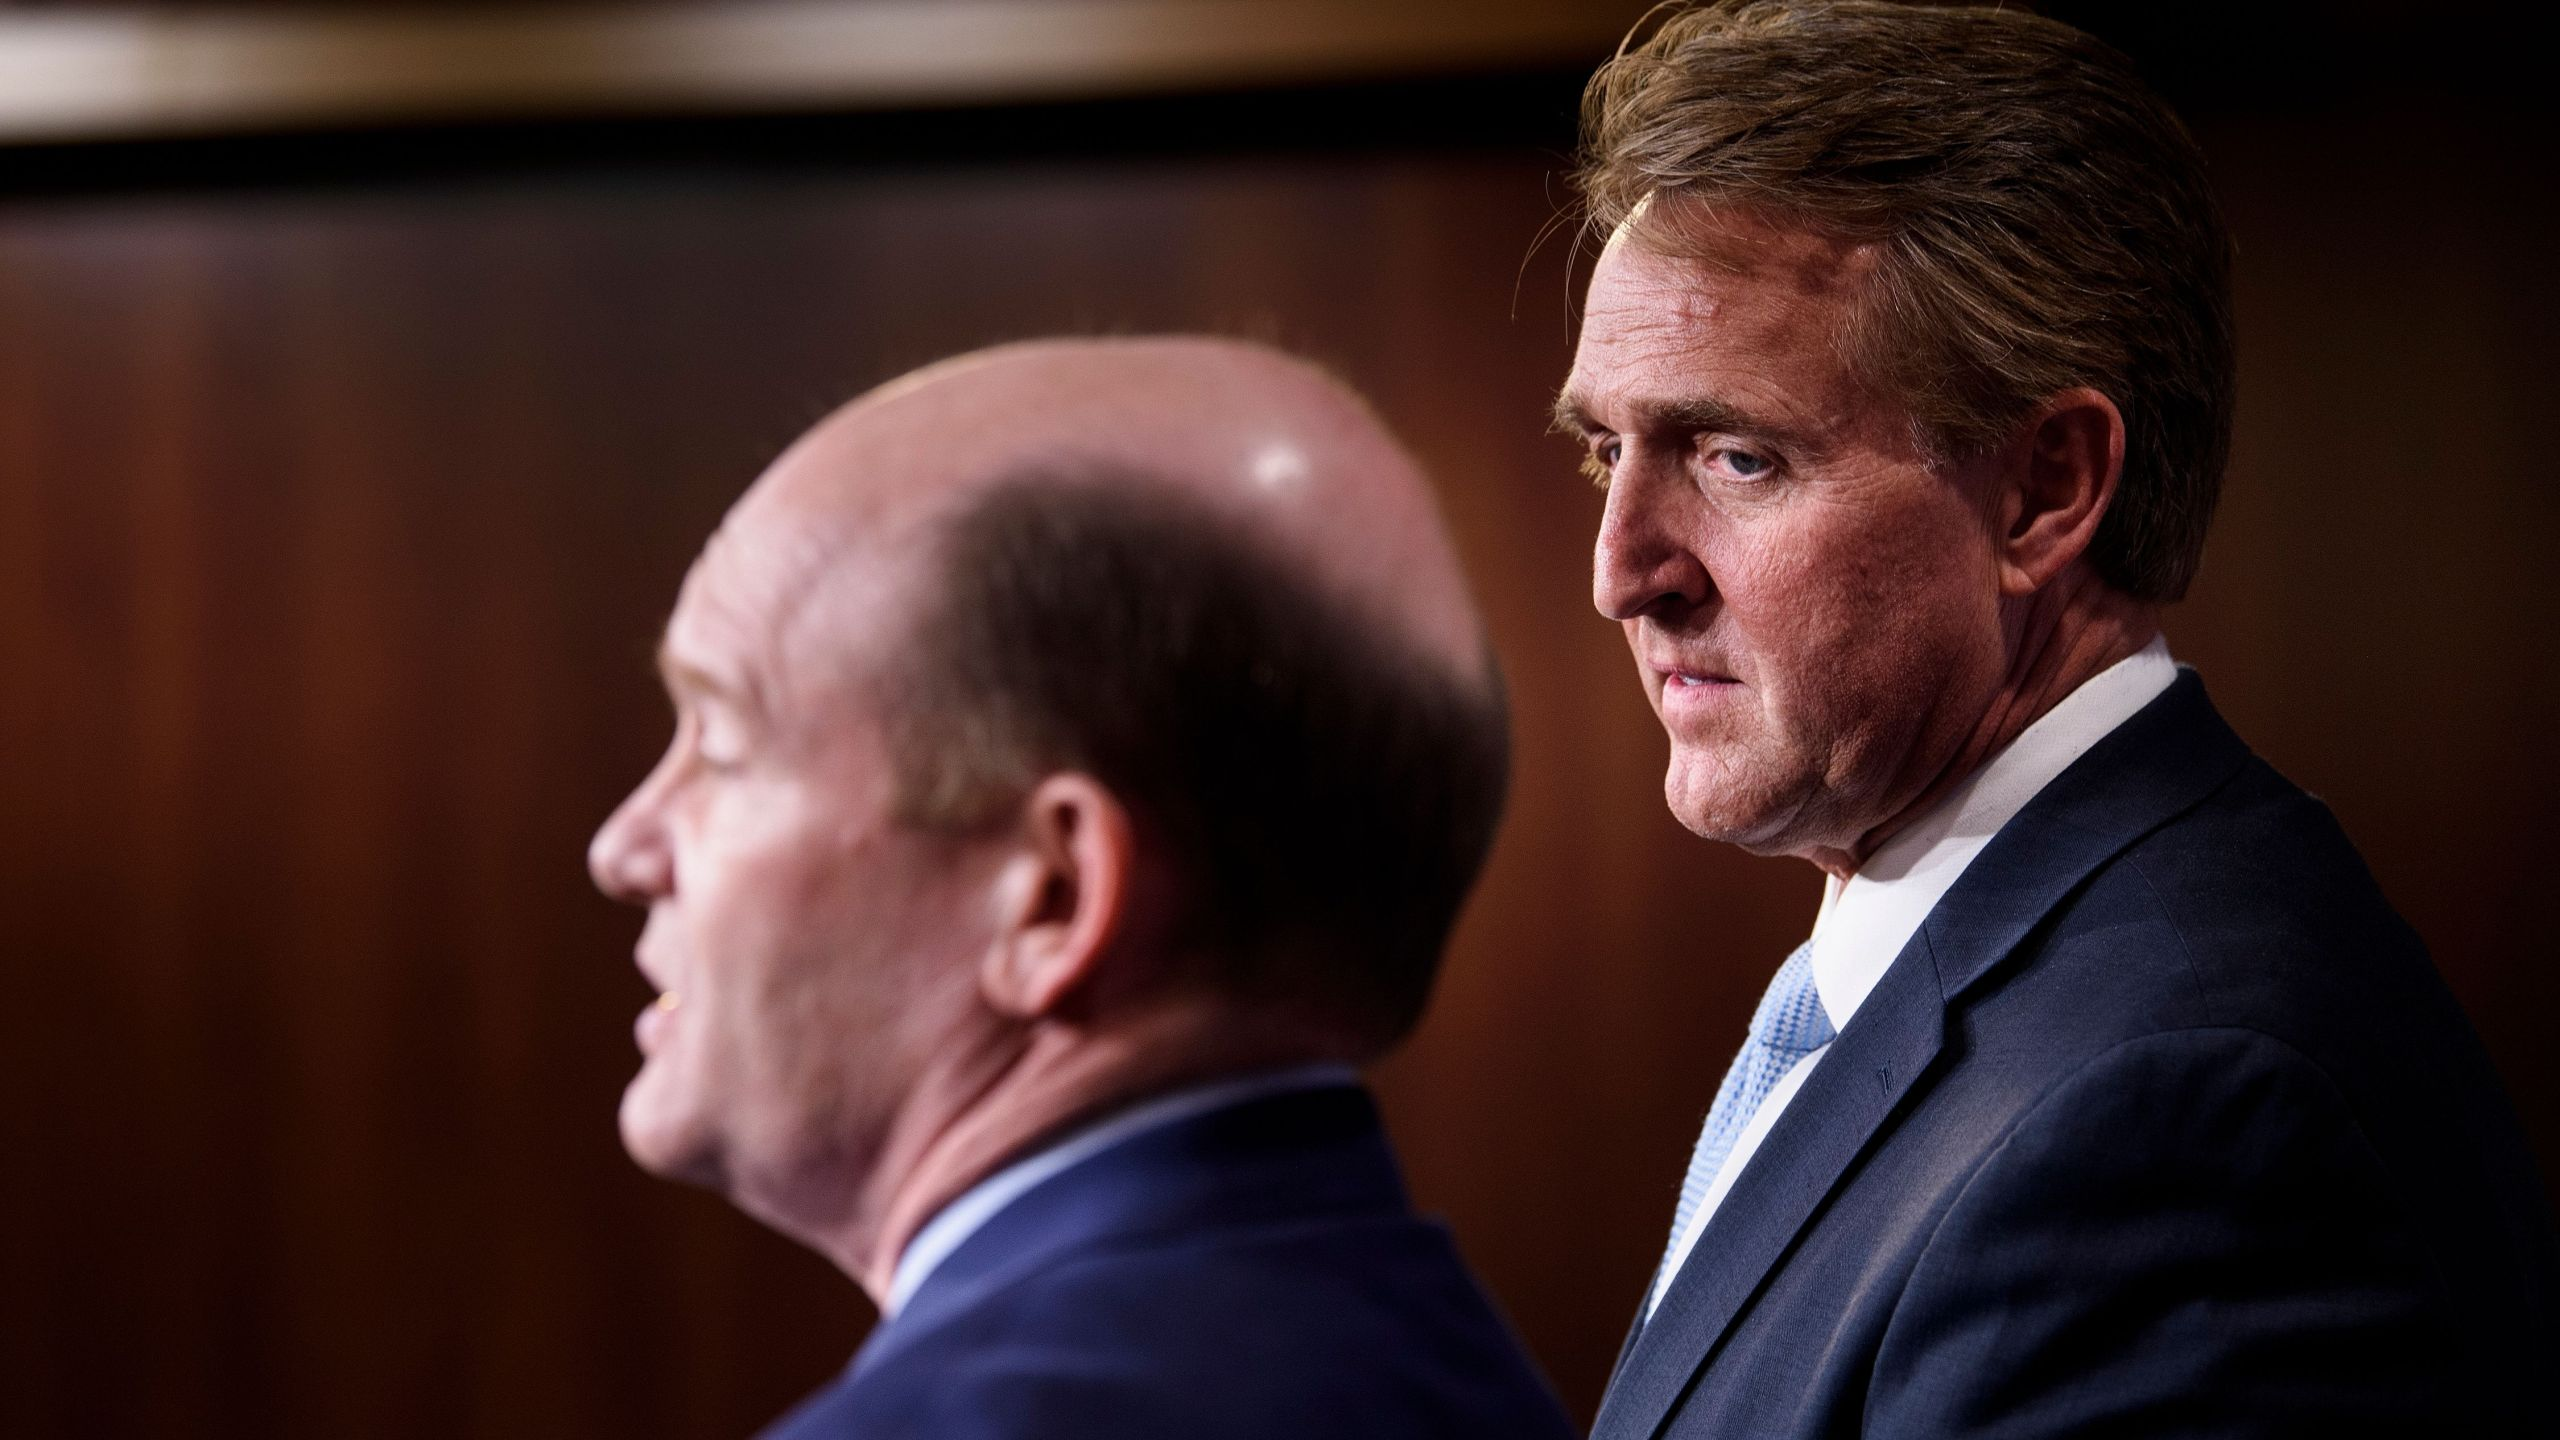 Sen. Jeff Flake (R-AZ), right, and Sen. Christopher A. Coons (D-DE) hold a press conference on legislation to protect the Mueller Investigation on Capitol Hill Nov. 14, 2018. (Credit: BRENDAN SMIALOWSKI/AFP/Getty Images)